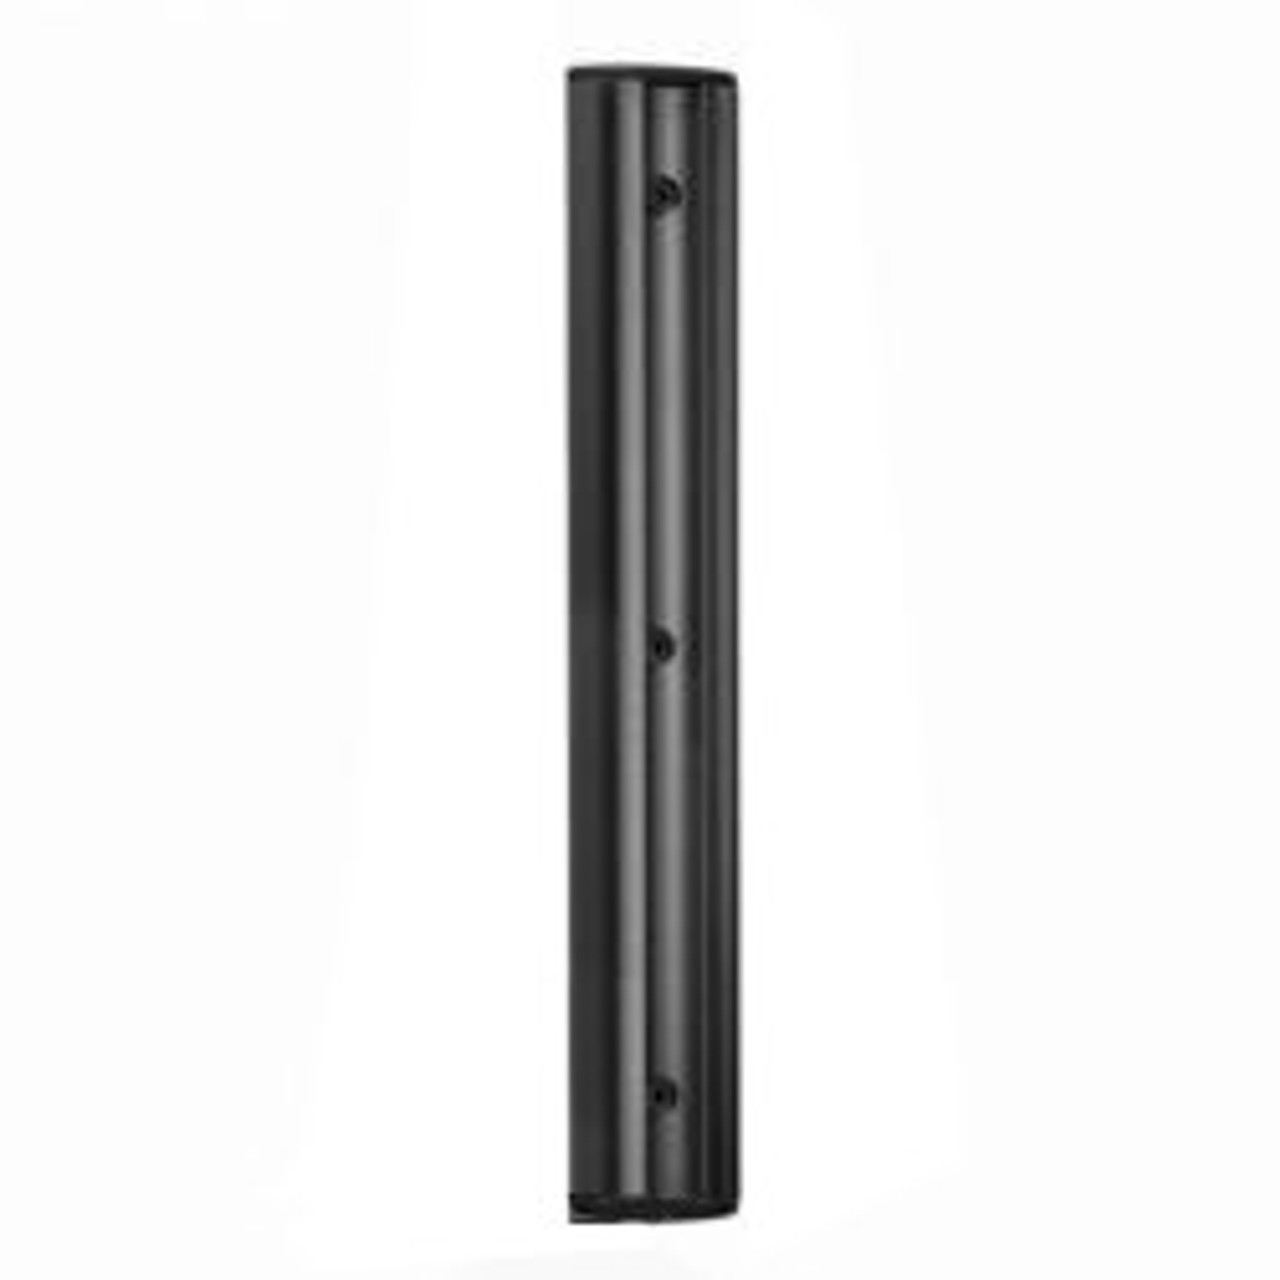 Image for Atdec AWM-W35 350mm Wall Mount for AWM Arms - Black CX Computer Superstore